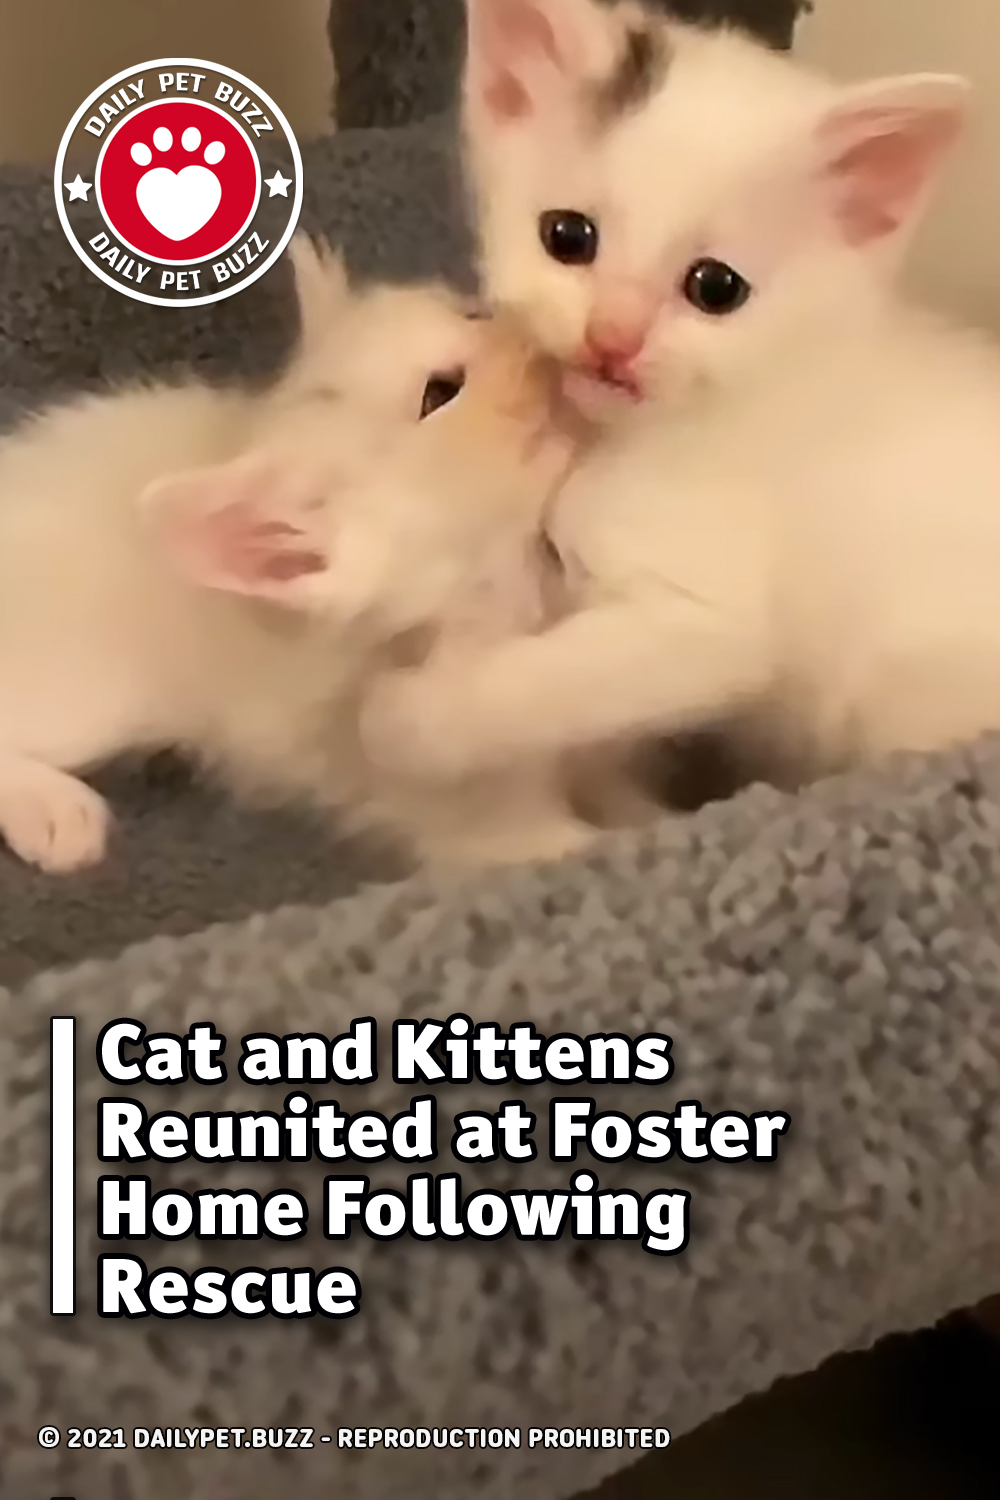 Cat and Kittens Reunited at Foster Home Following Rescue